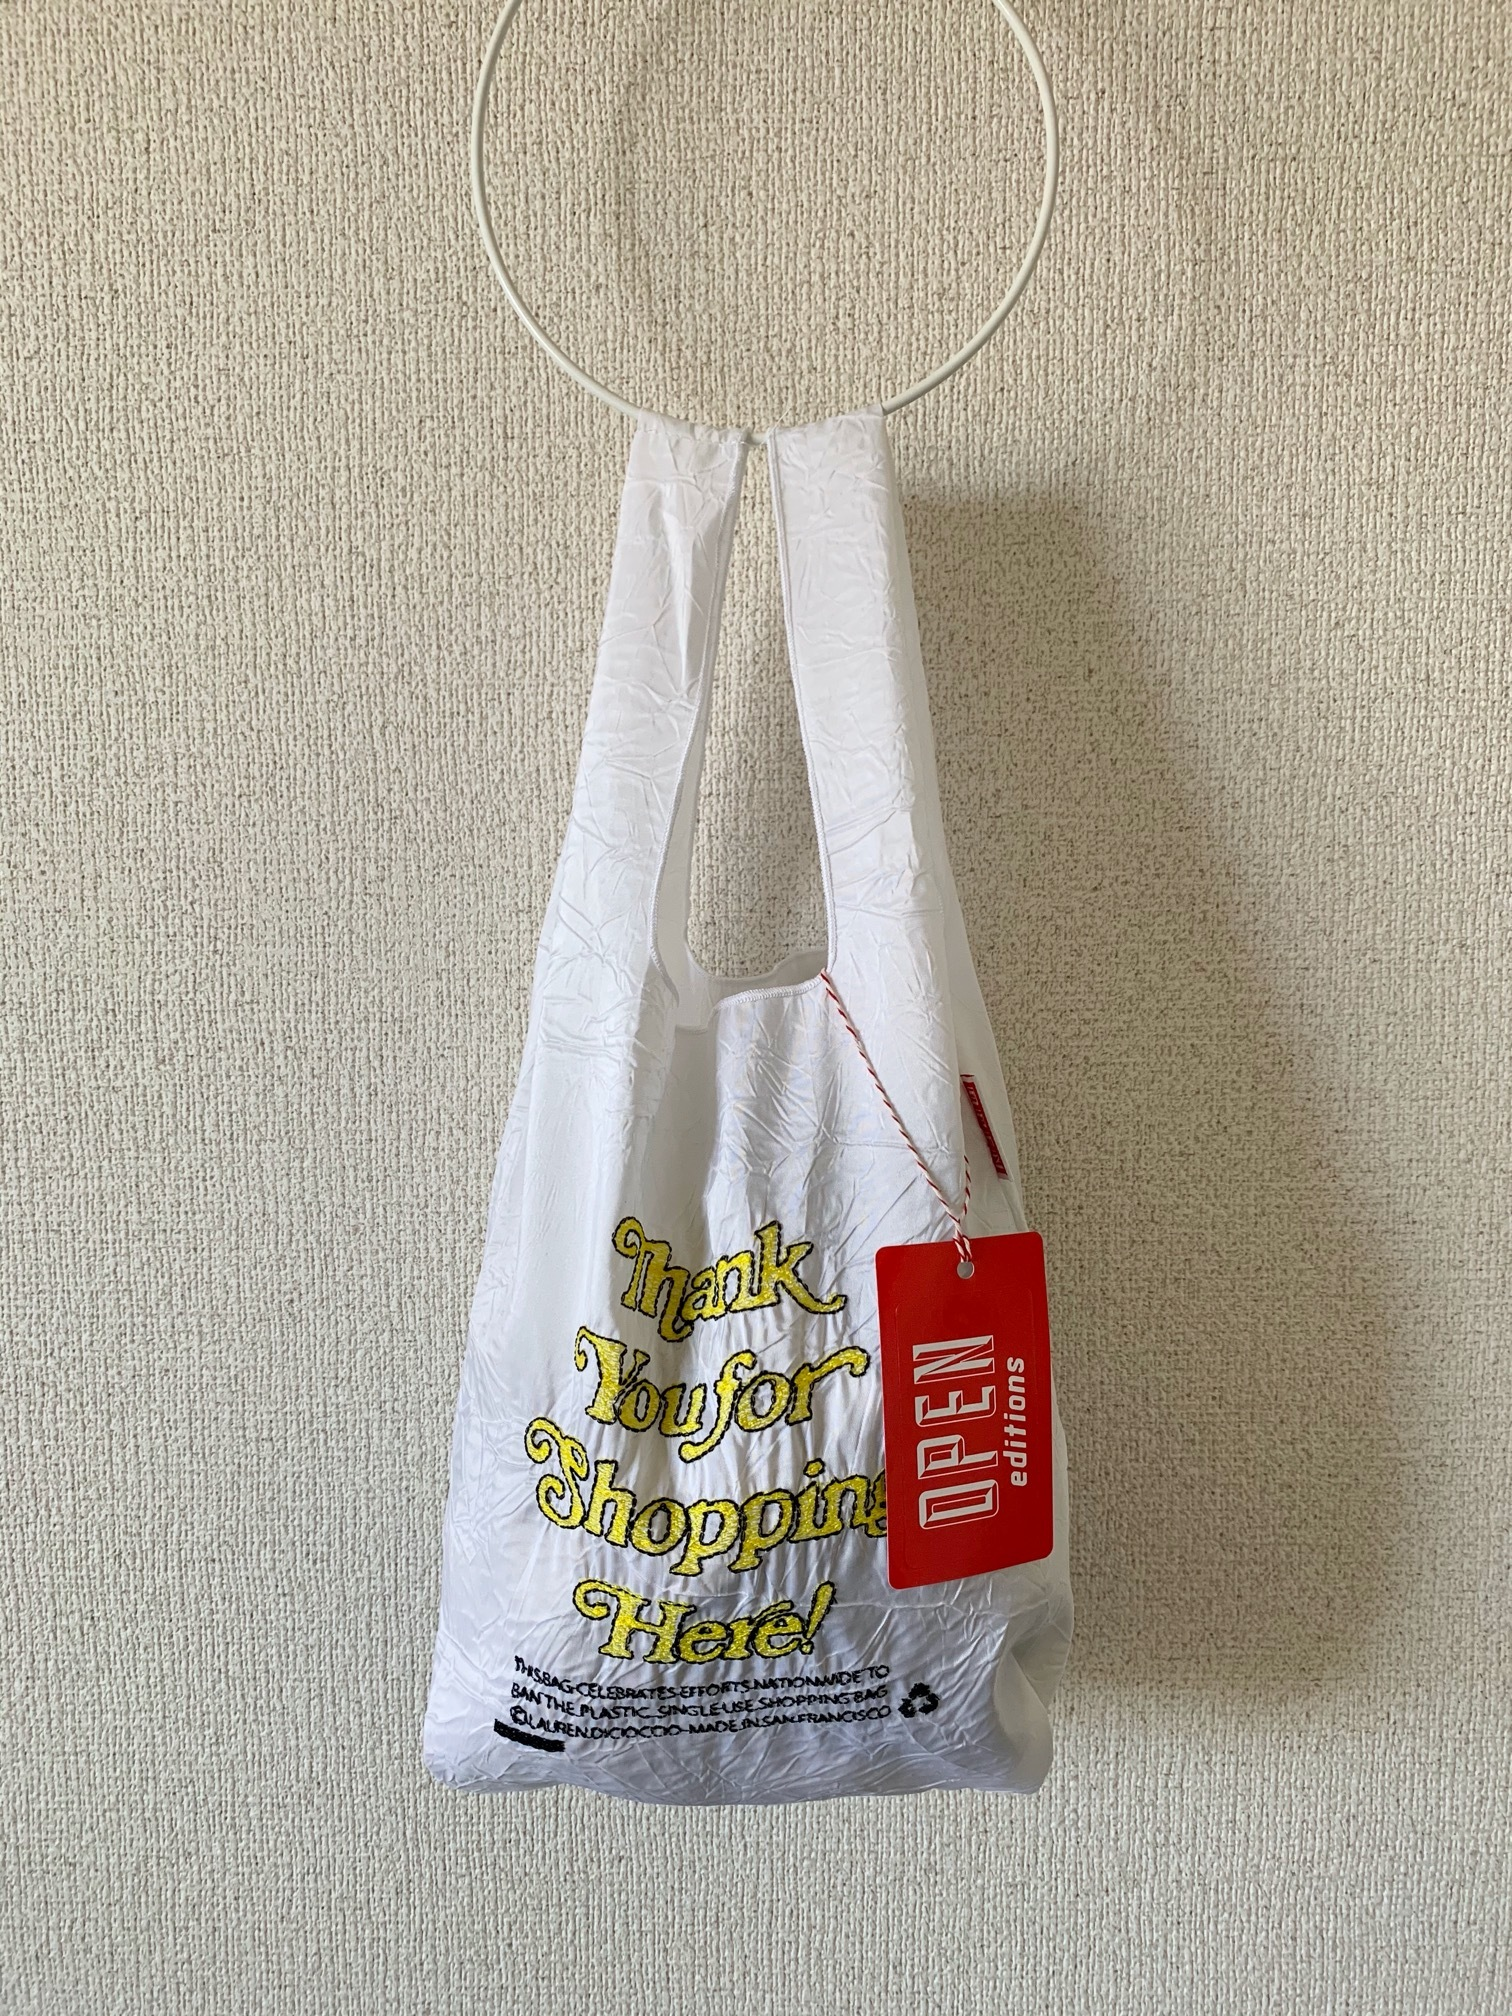 【OPEN EDITIONS / 送料無料】THANK YOU MINI エコバッグ/ THANK YOU FOR SHOPPING HERE White